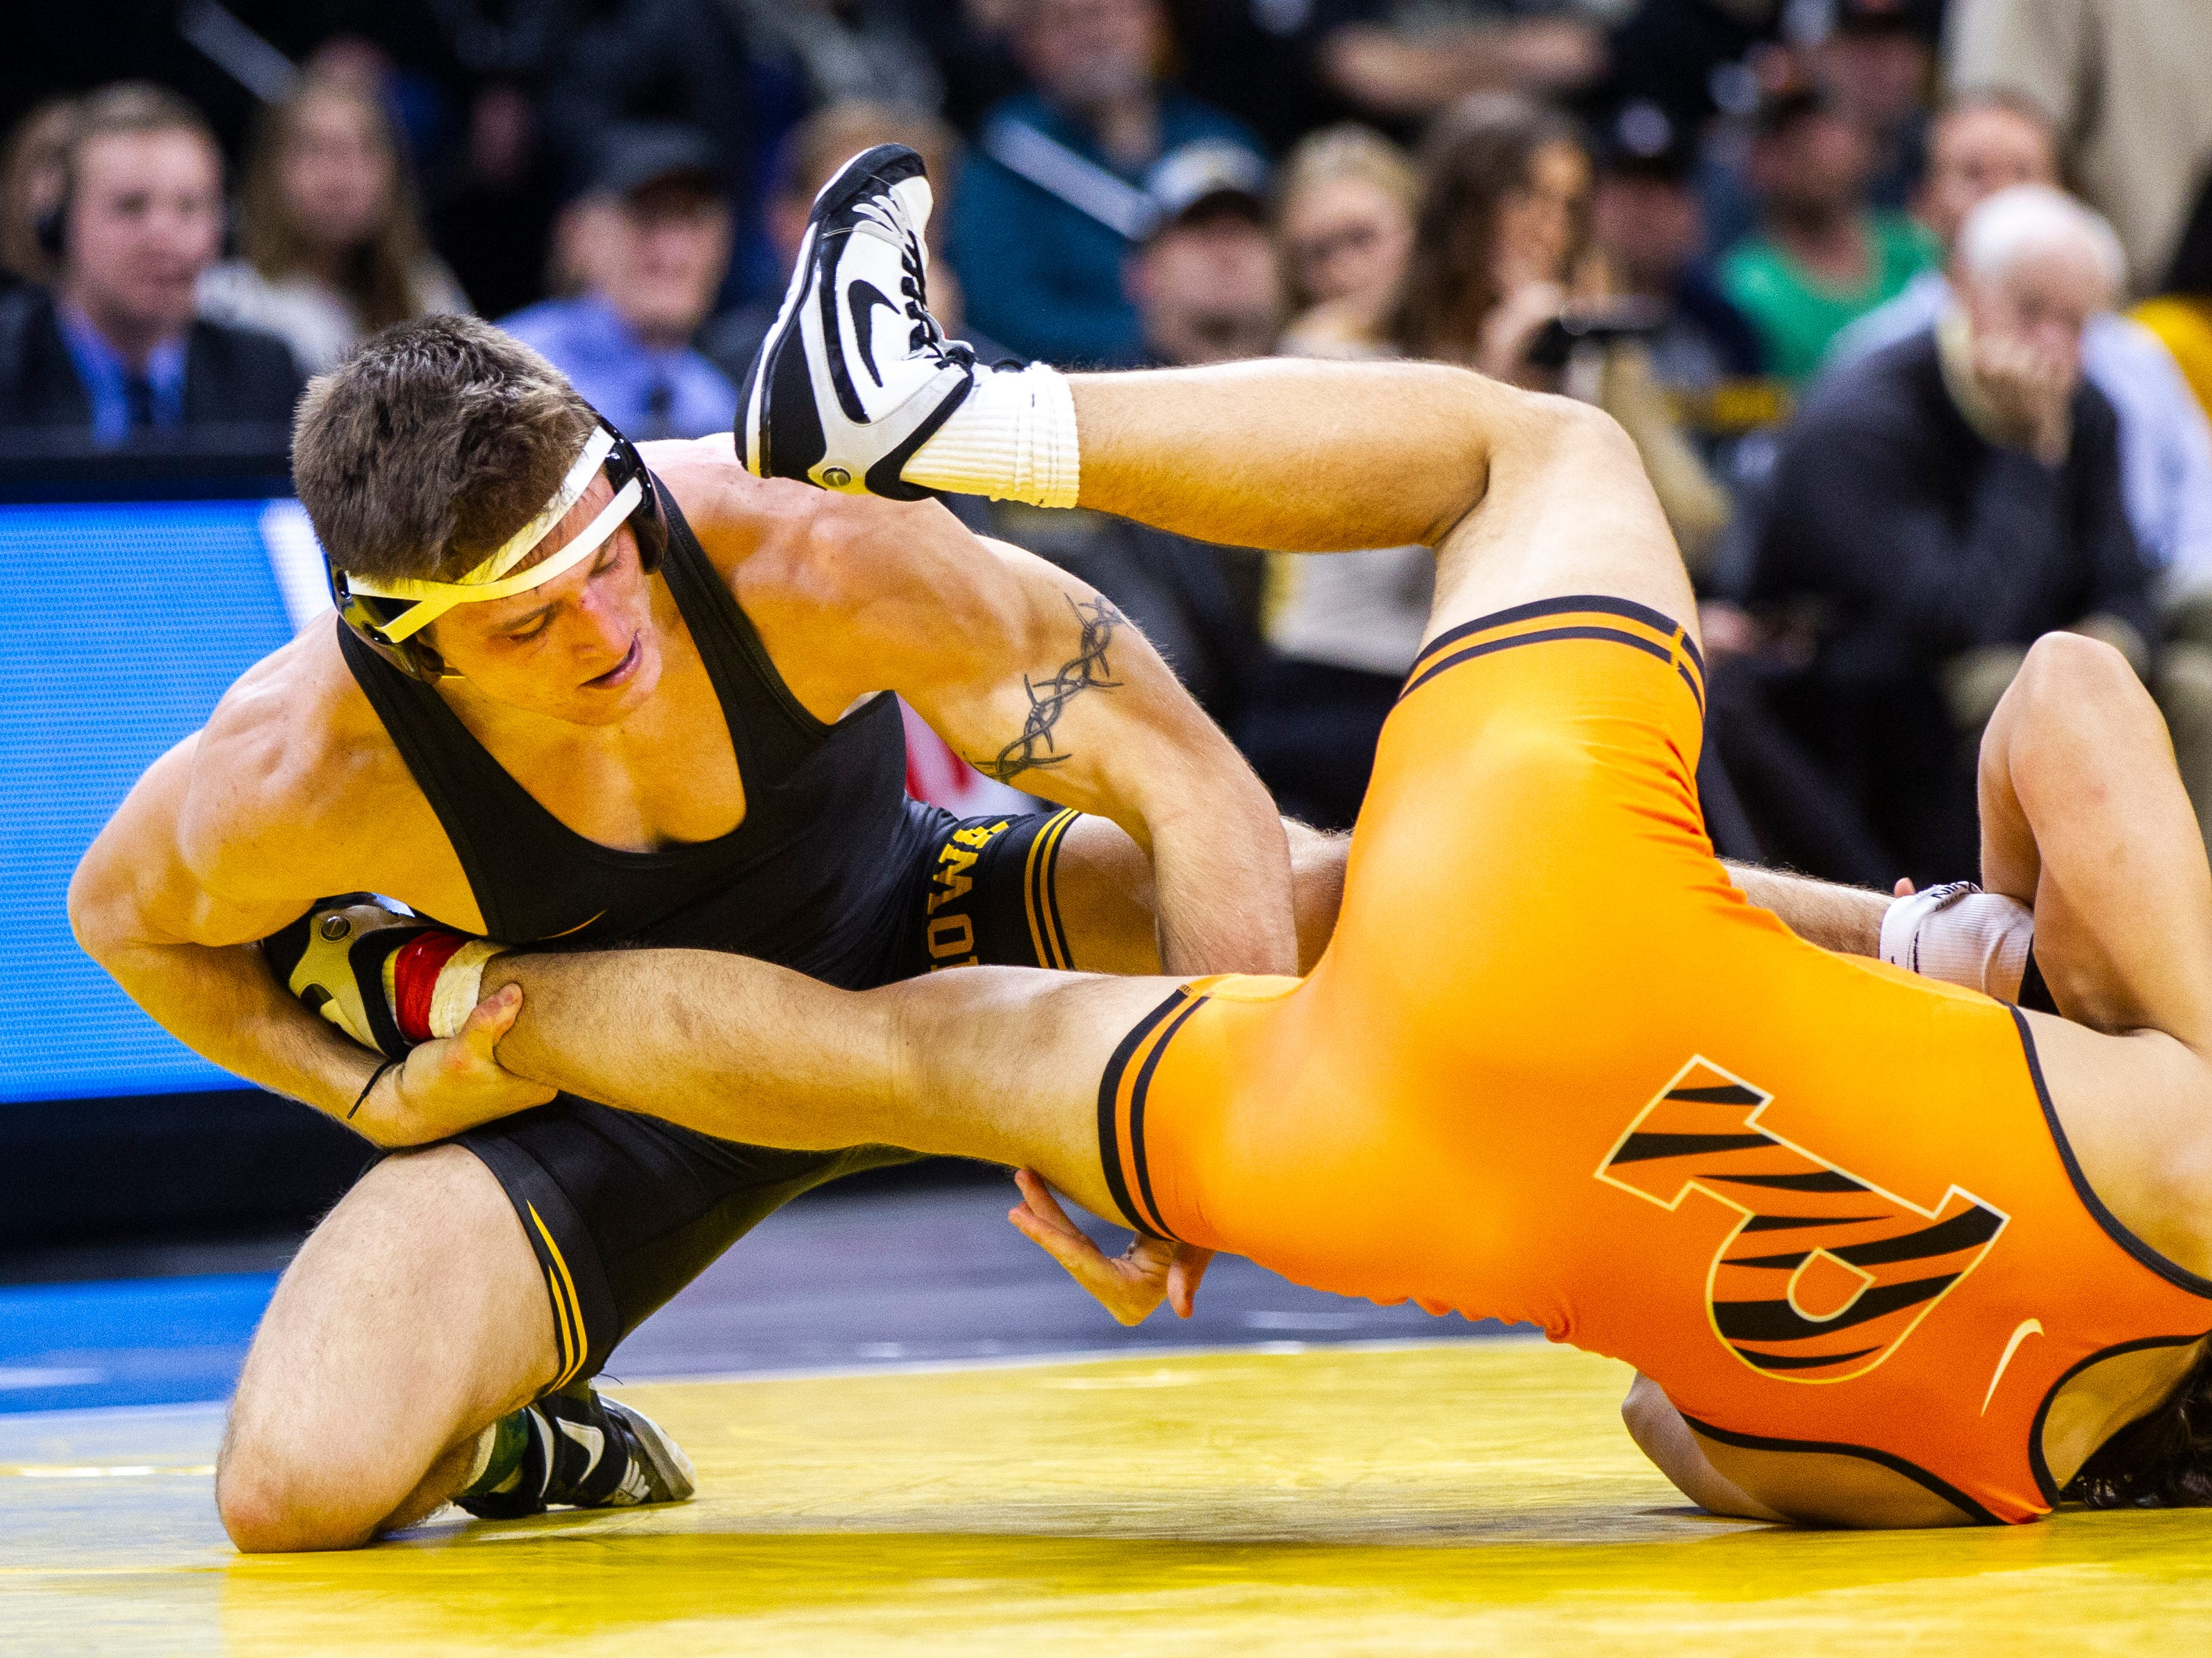 Iowa's Myles Wilson (left) wrestles Princeton's Travis Stefanik at 174 during an NCAA wrestle dual on Friday, Nov. 16, 2018, at Carver-Hawkeye Arena in Iowa City.